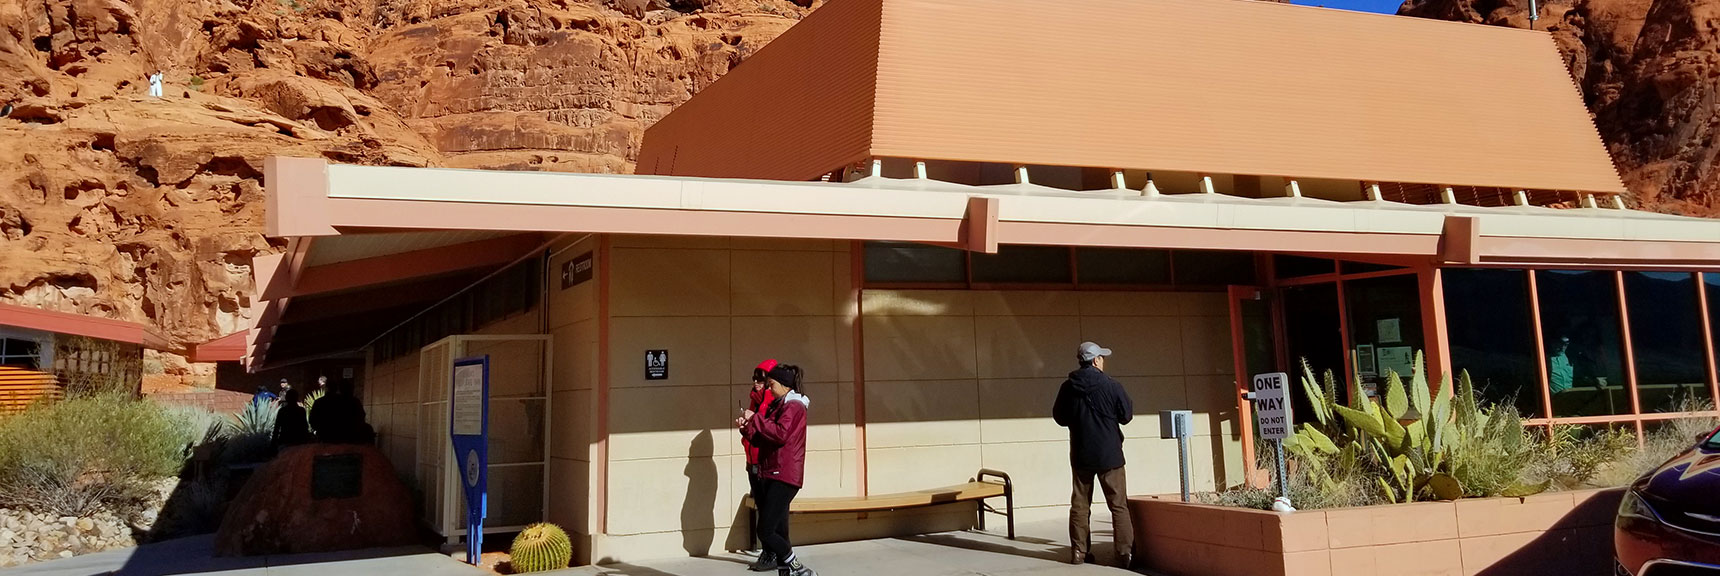 Visitors Center at Valley of Fire State Park, Nevada